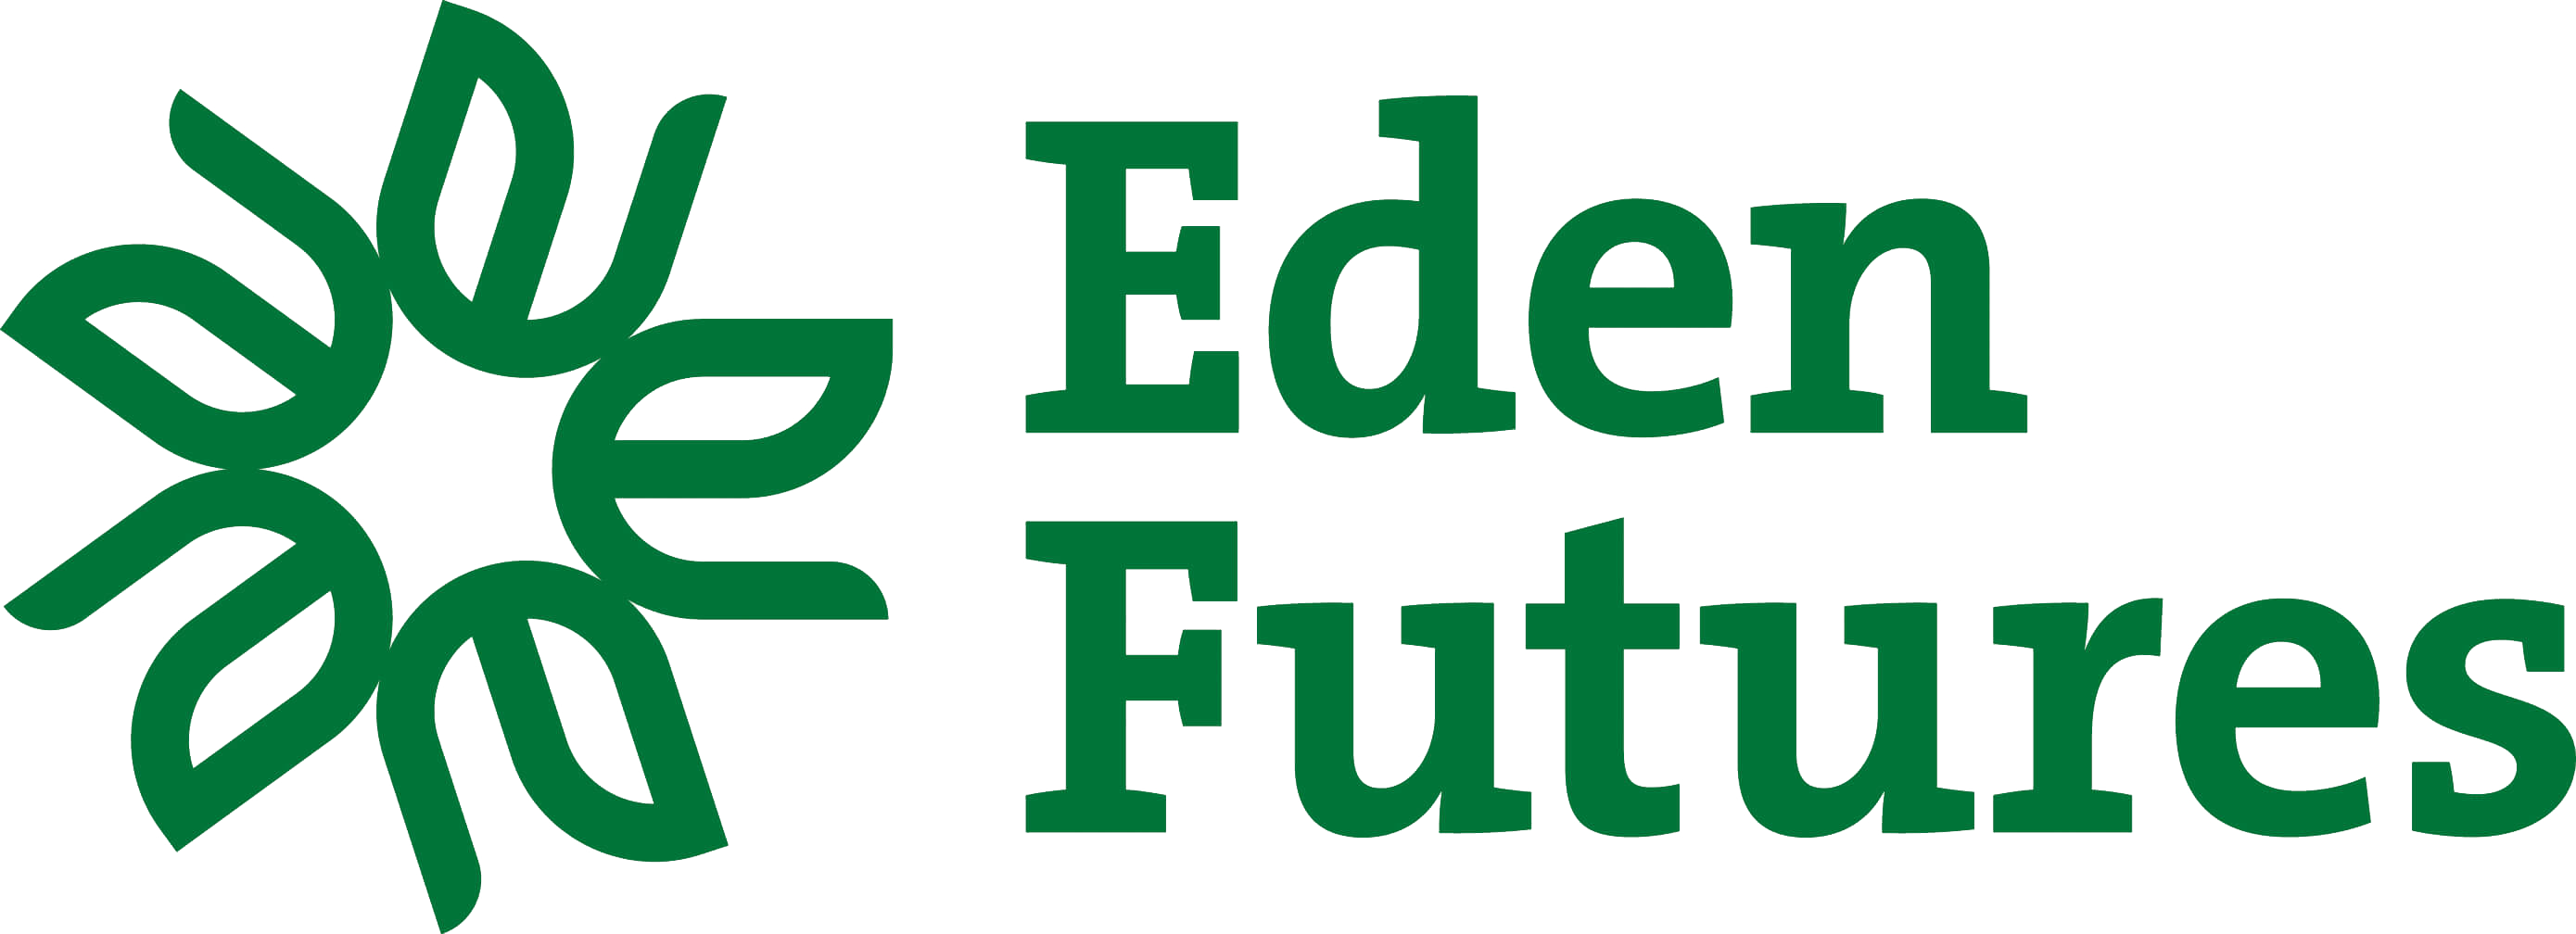 Sovereign Capital, Eden Futures logo